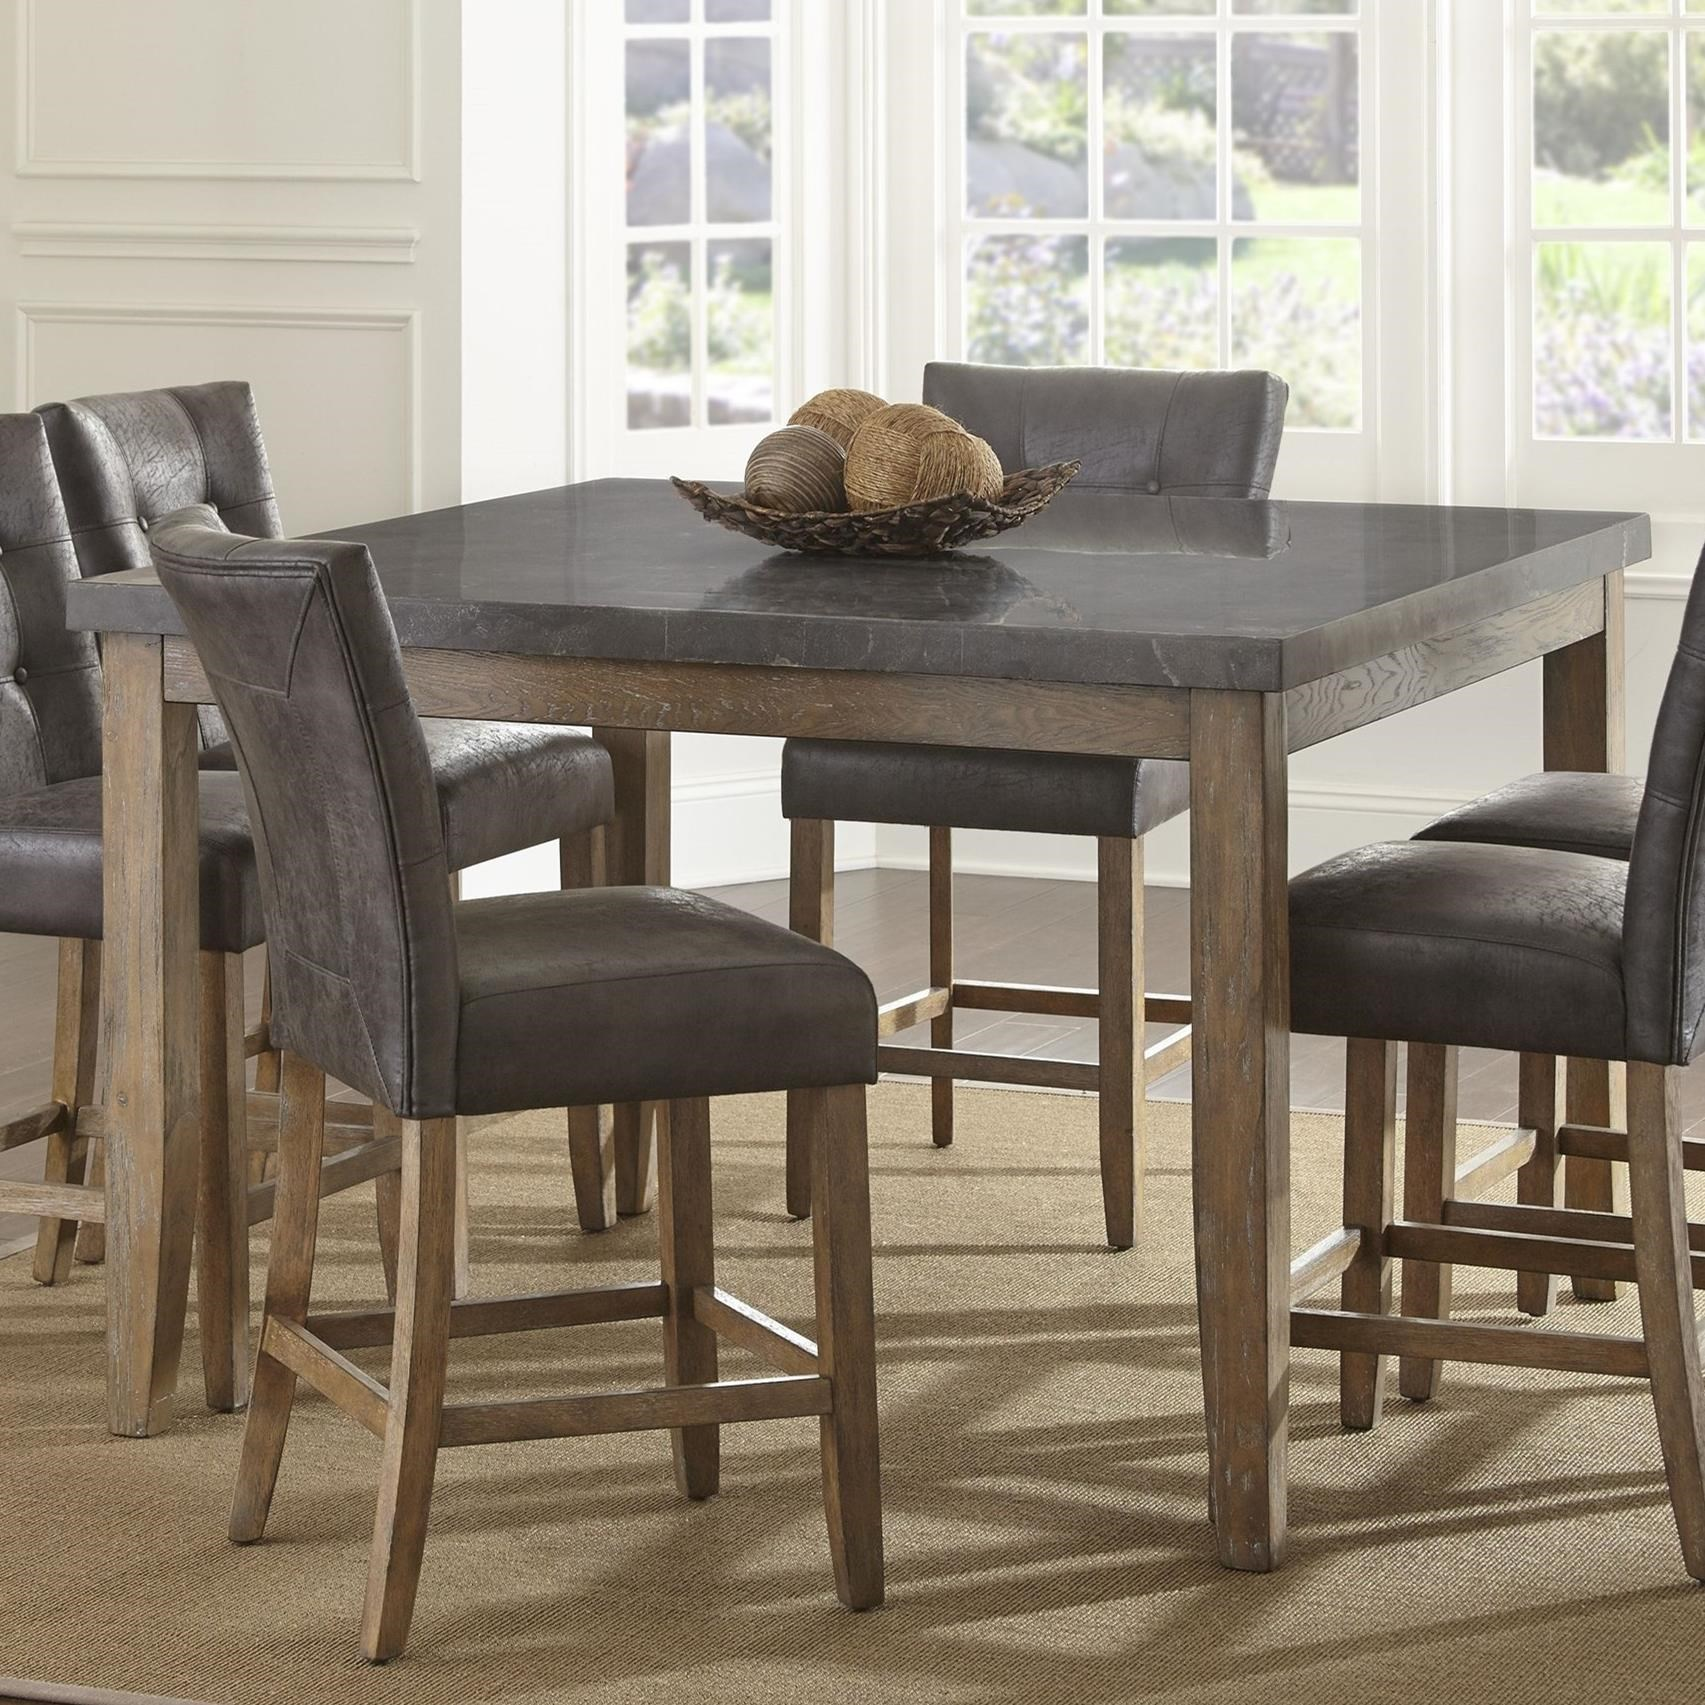 Steve Silver Debby Transitional Square Counter Height